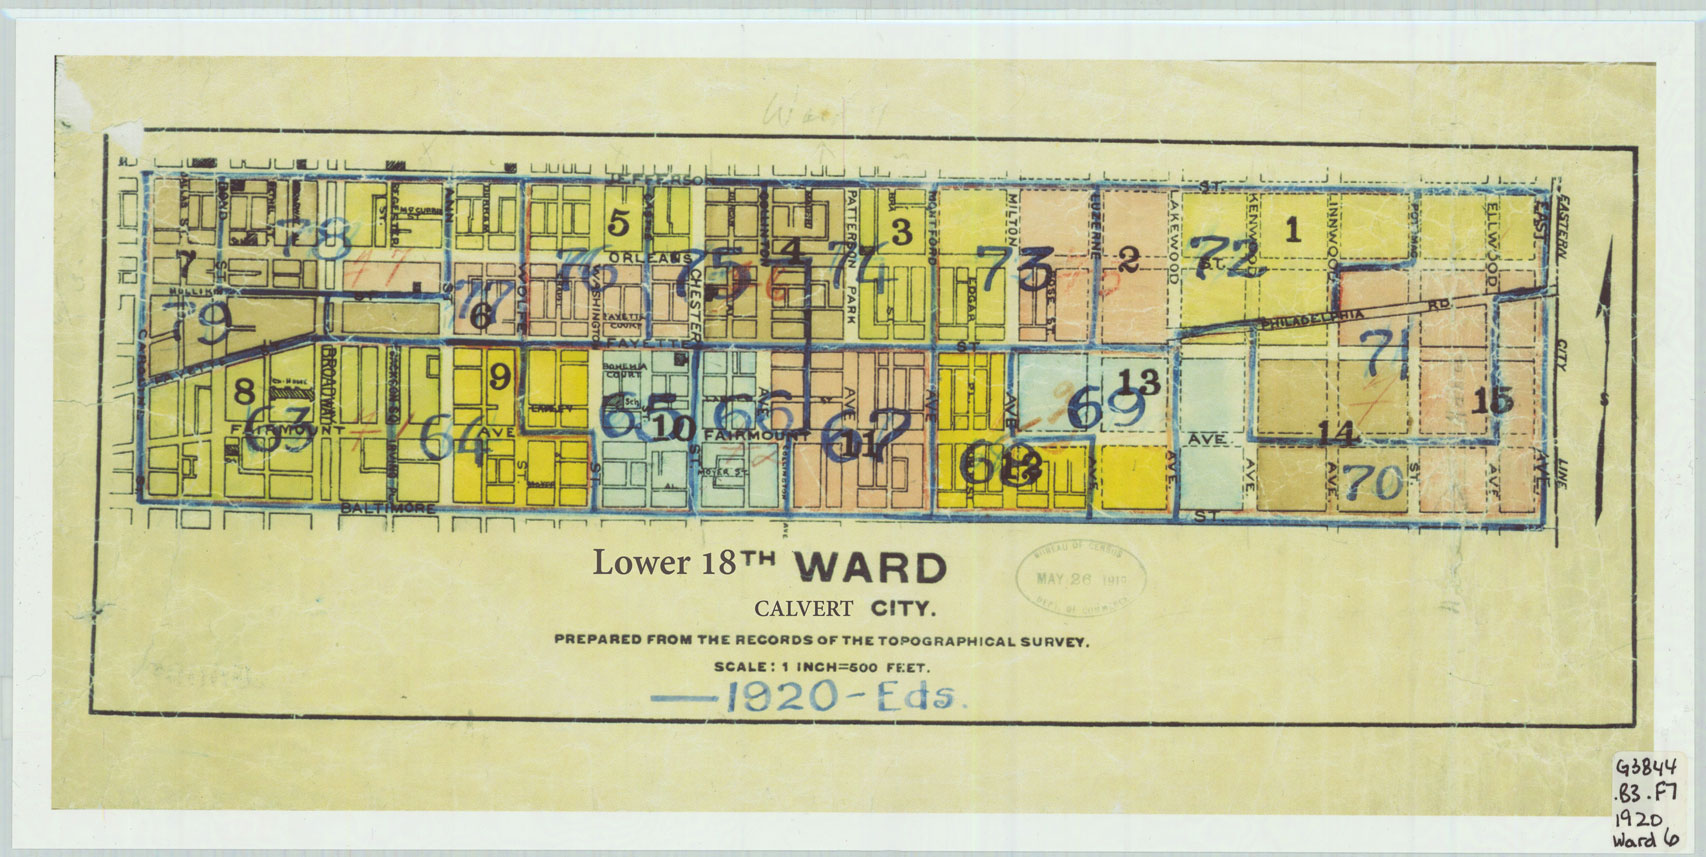 Lower 18th ward  calvert city